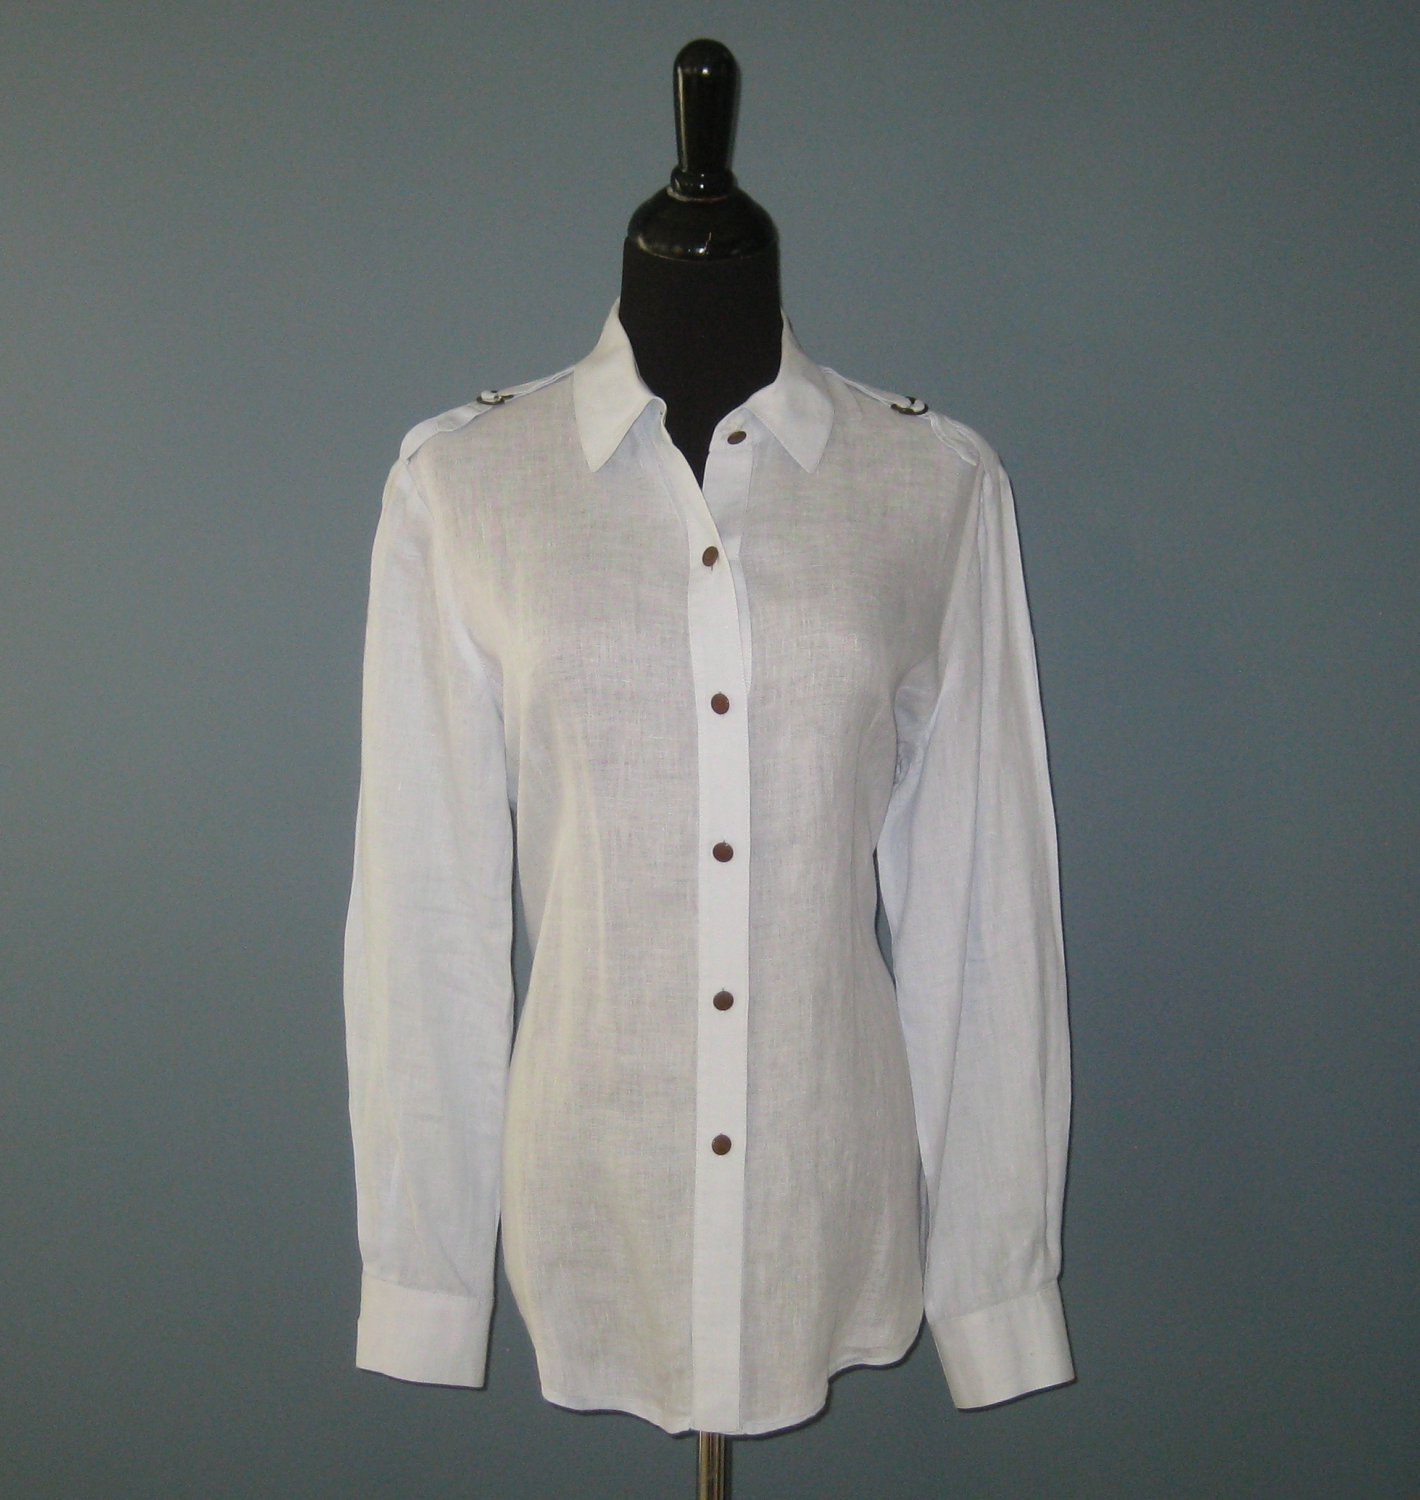 Pre-Owned Ellen Tracy Powder Blue Semi Sheer 100% Linen L/S Shirt Blouse - 12